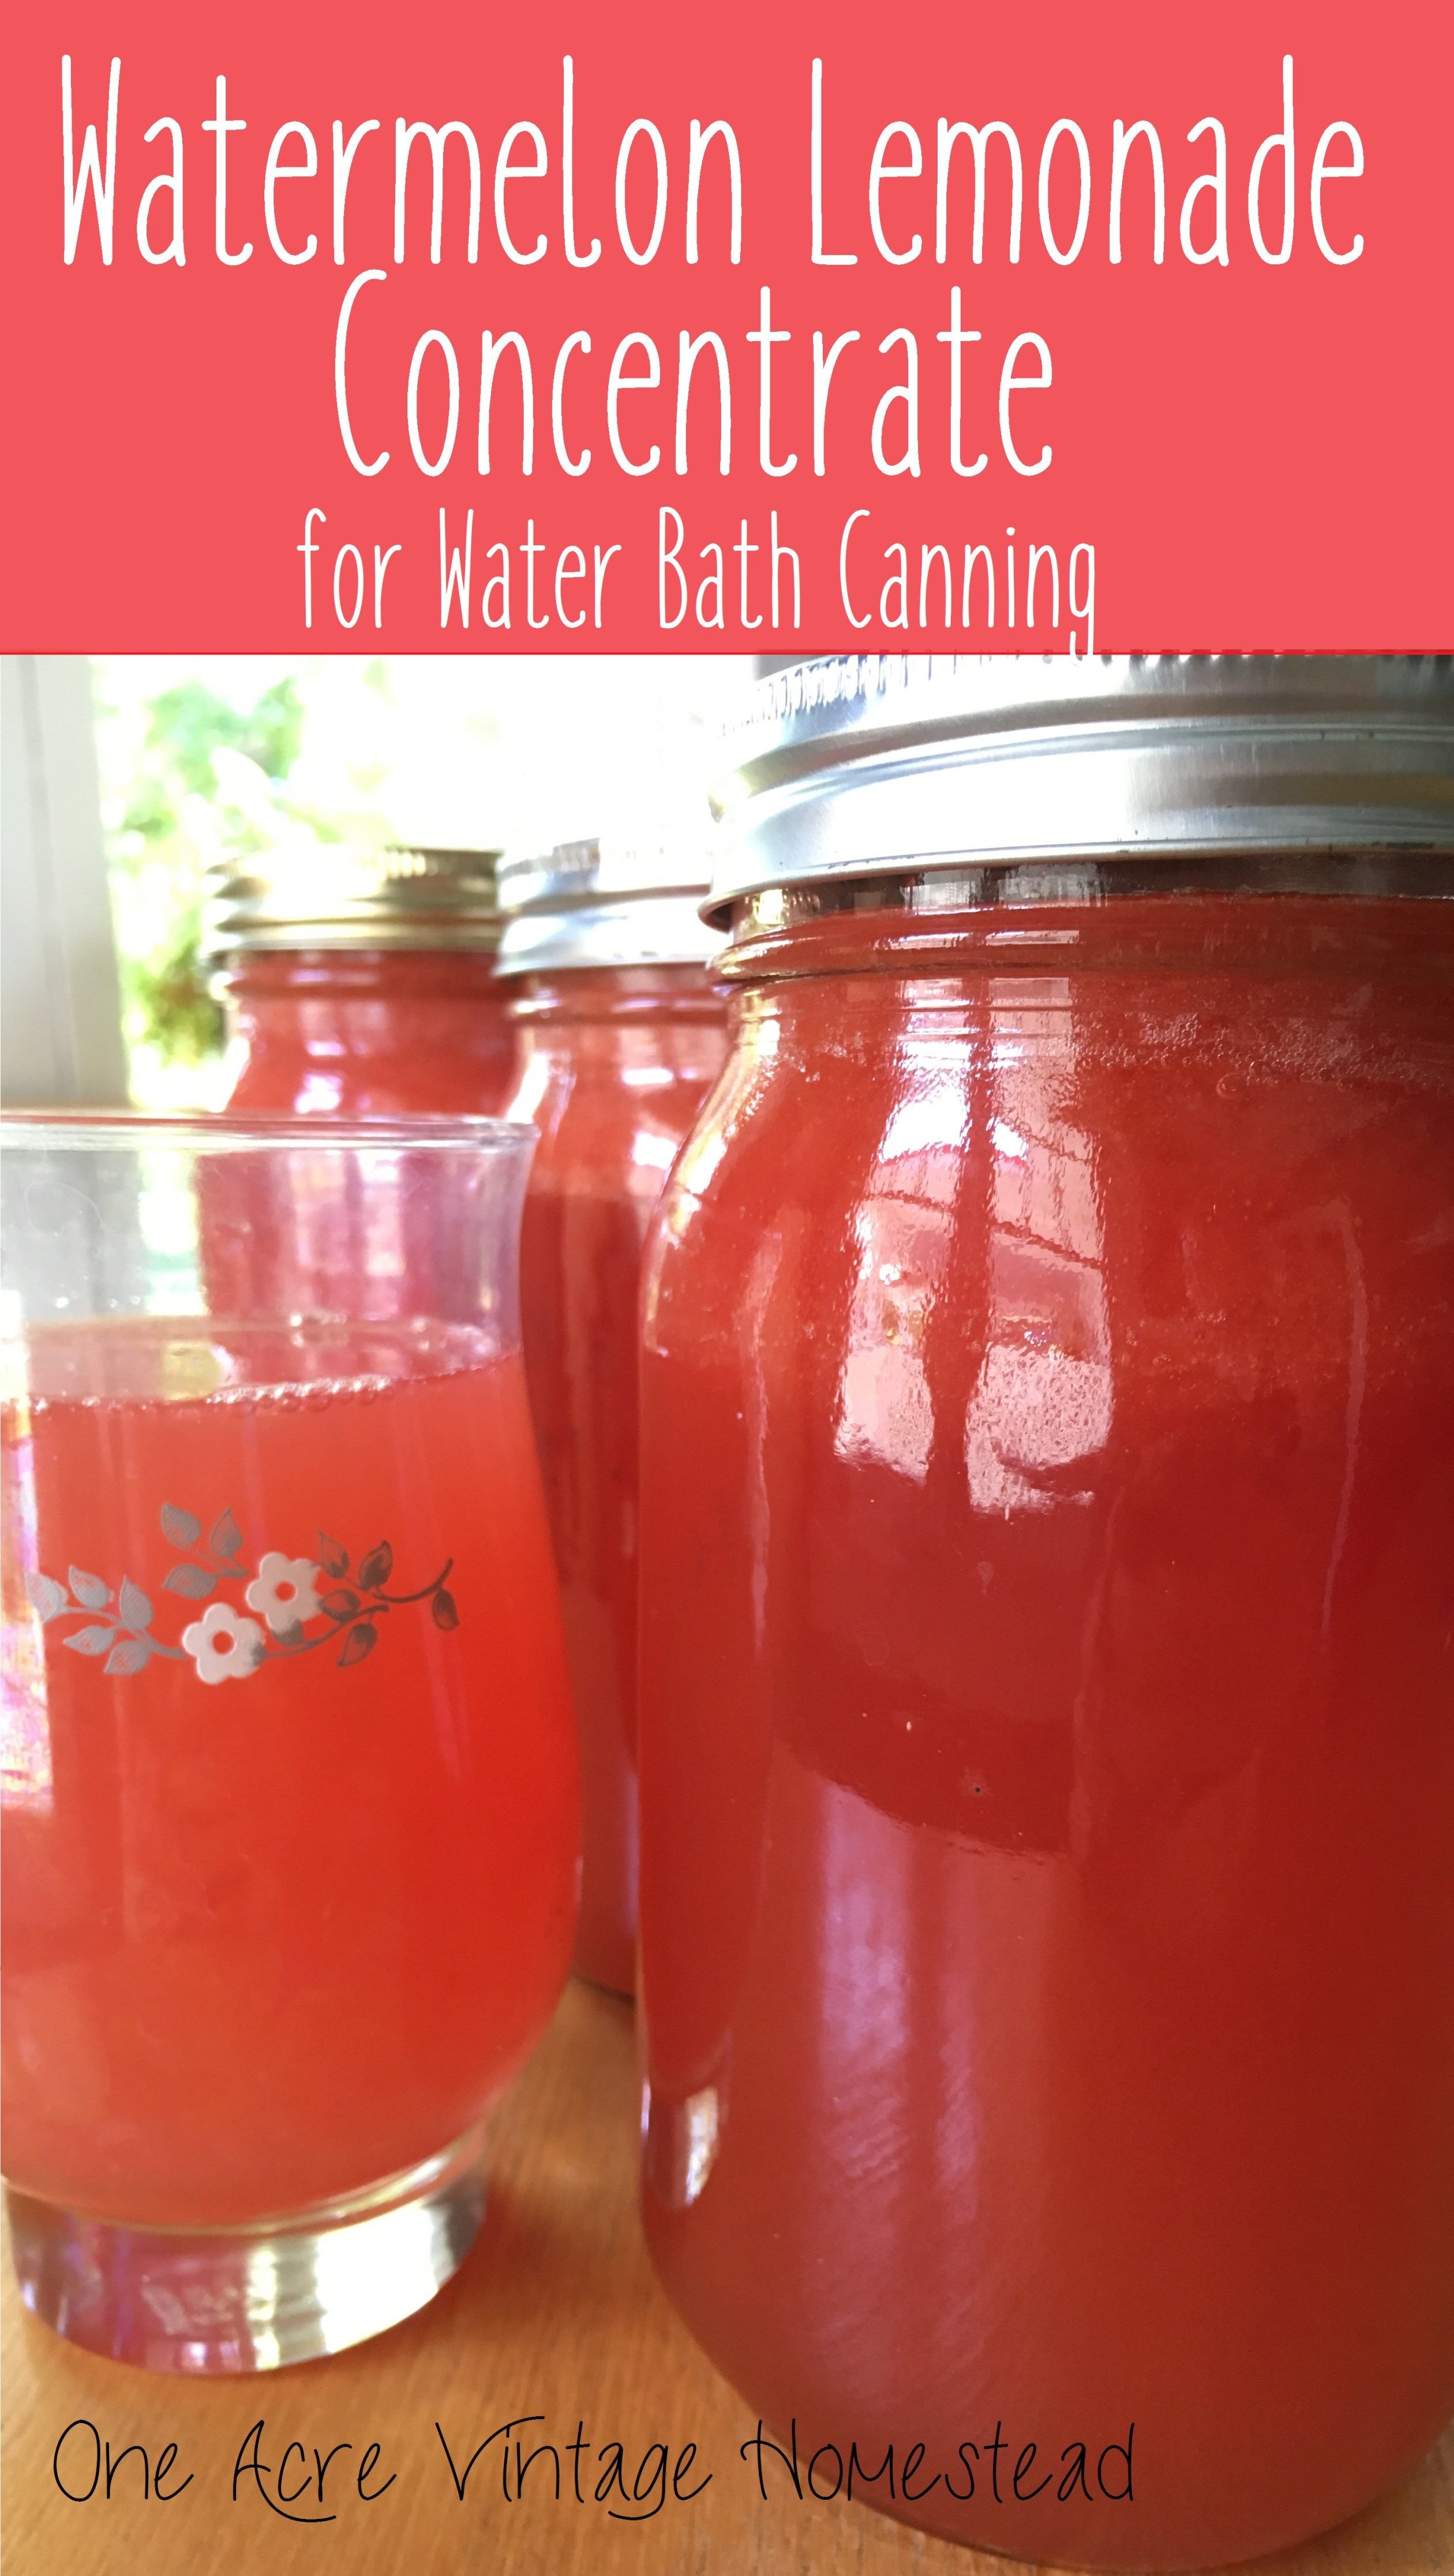 Watermelon Lemonade Concentrate A Water Bath Canning Food Preservation Recipe Recipe Canning Food Preservation Canning Recipes Lemonade Concentrate